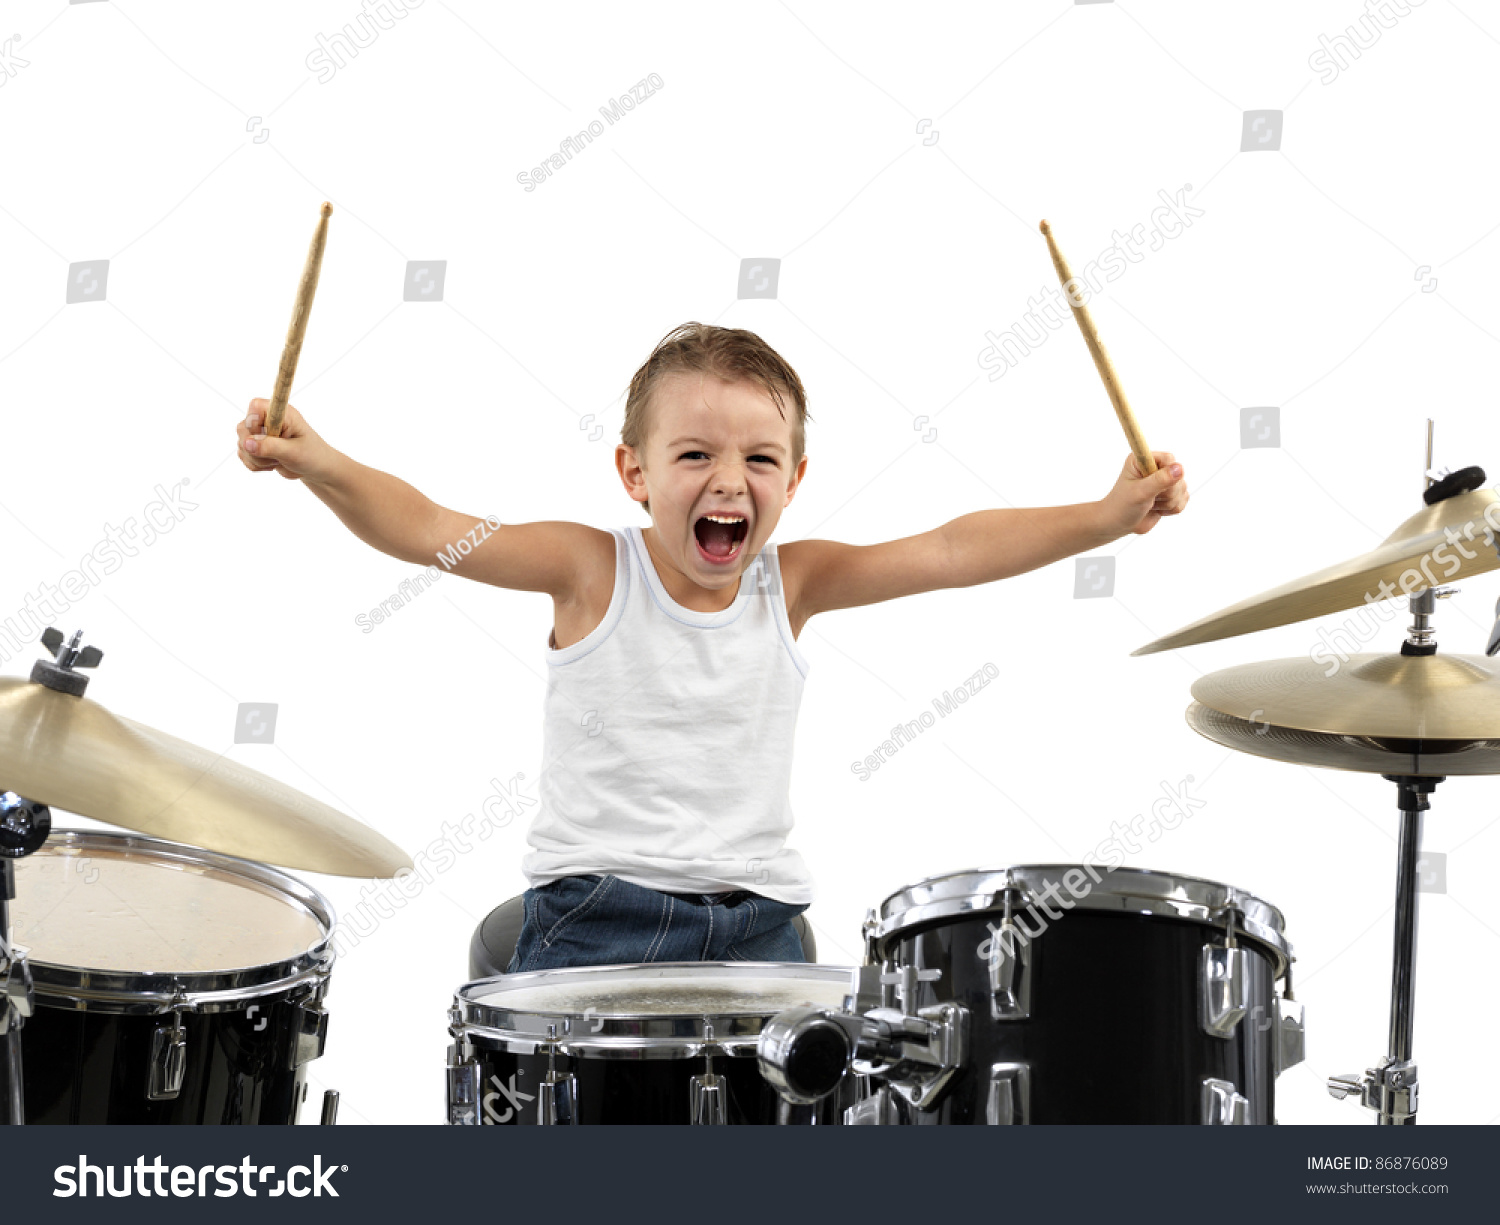 young boy play drum energy stock photo 86876089 shutterstock. Black Bedroom Furniture Sets. Home Design Ideas